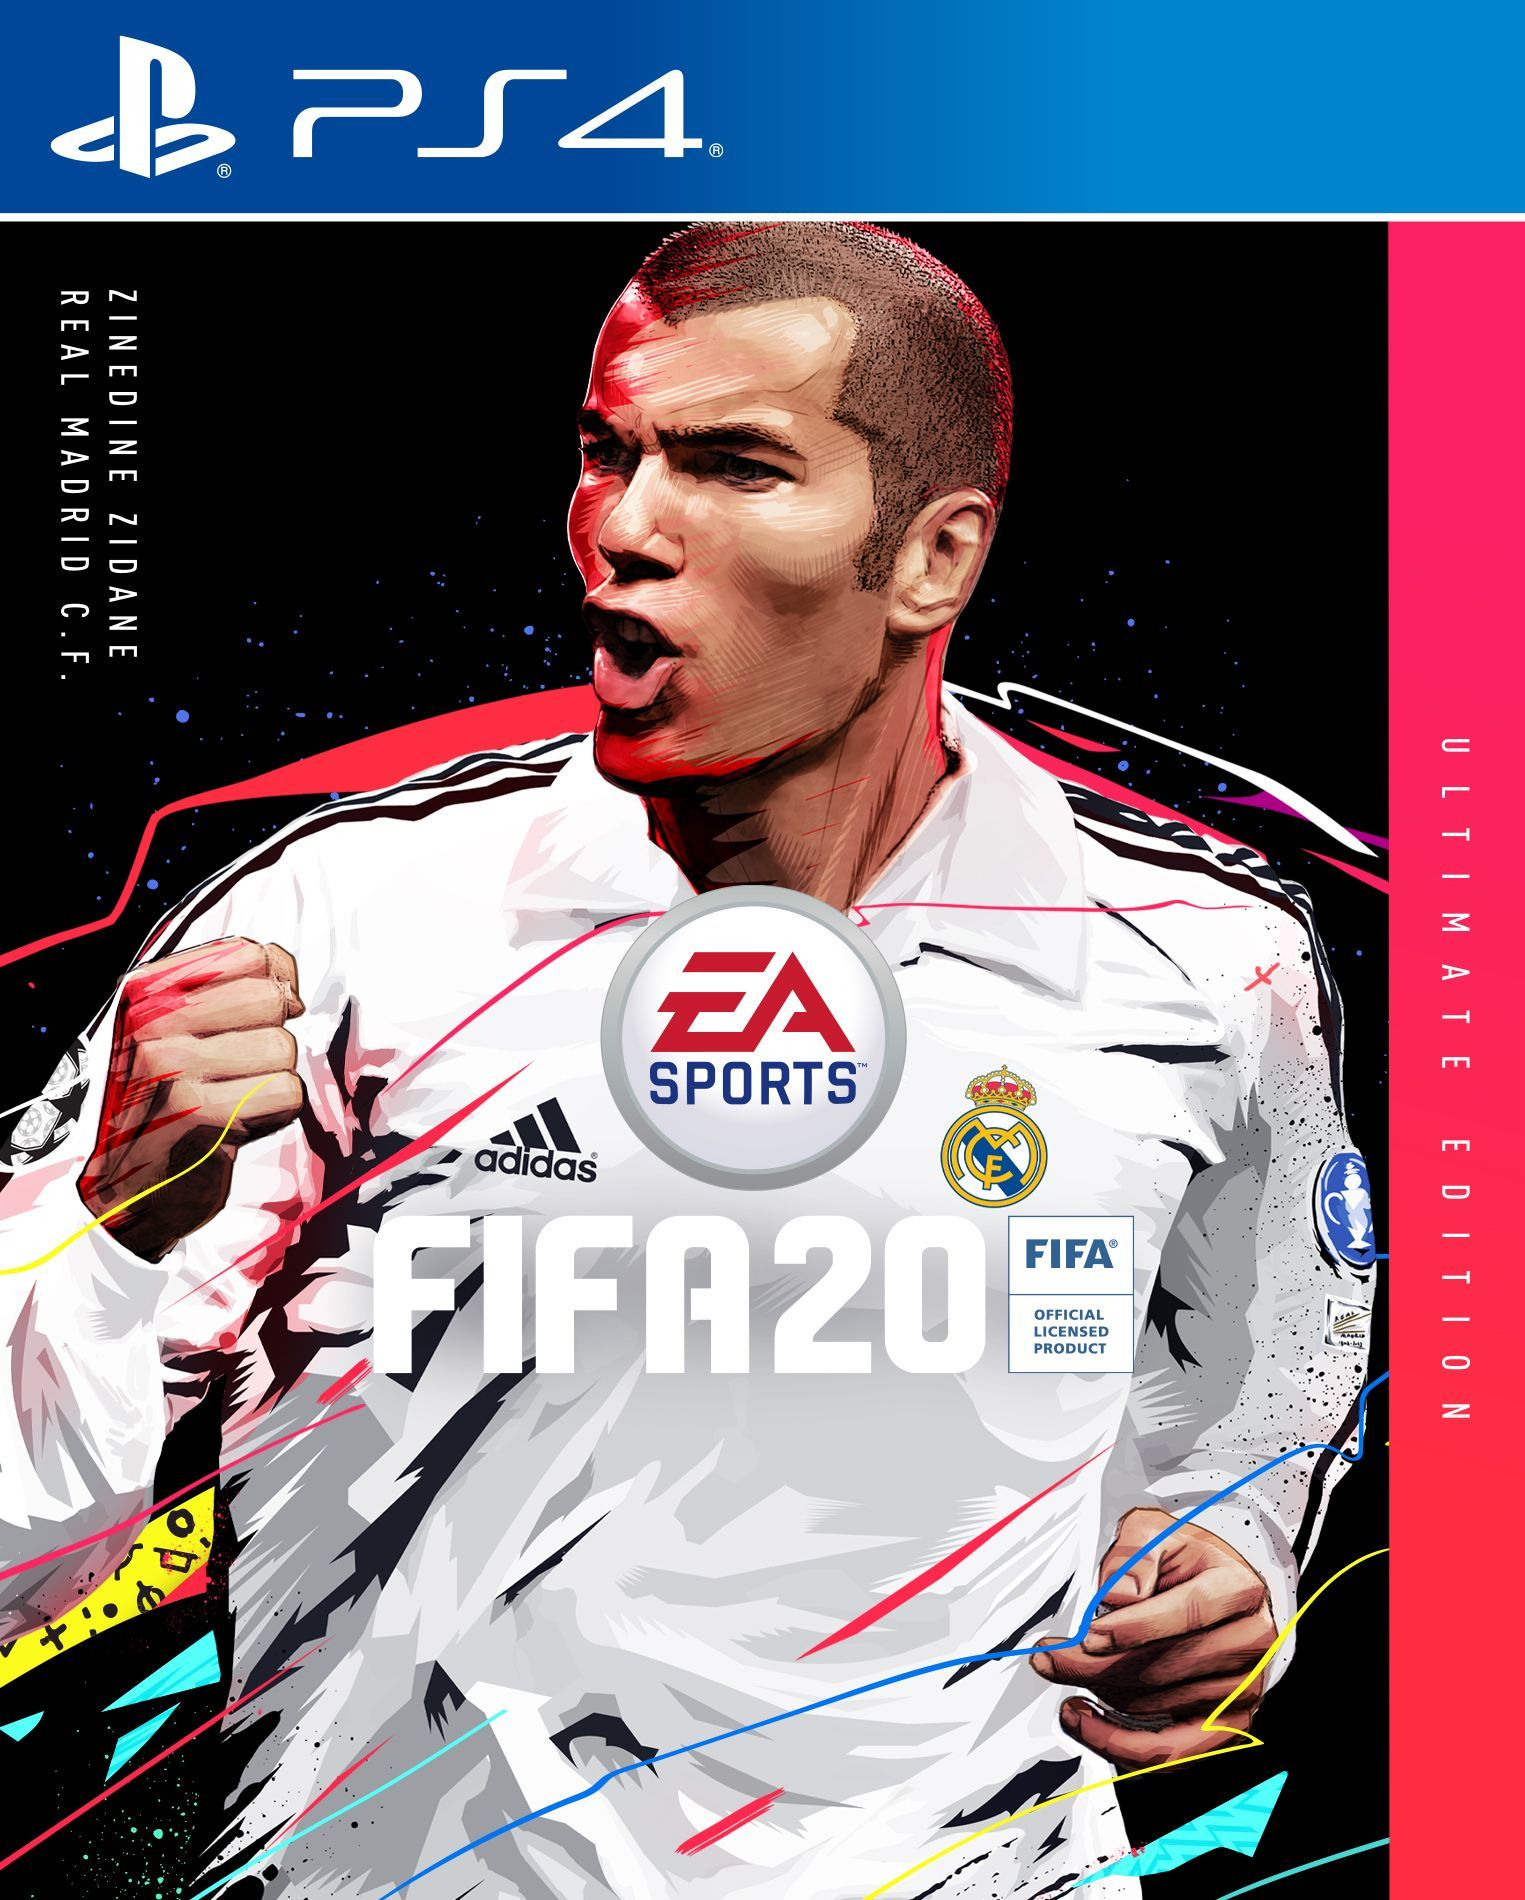 When Does FIFA 20 Come Out? PS4 And XBox Release Date, Pre